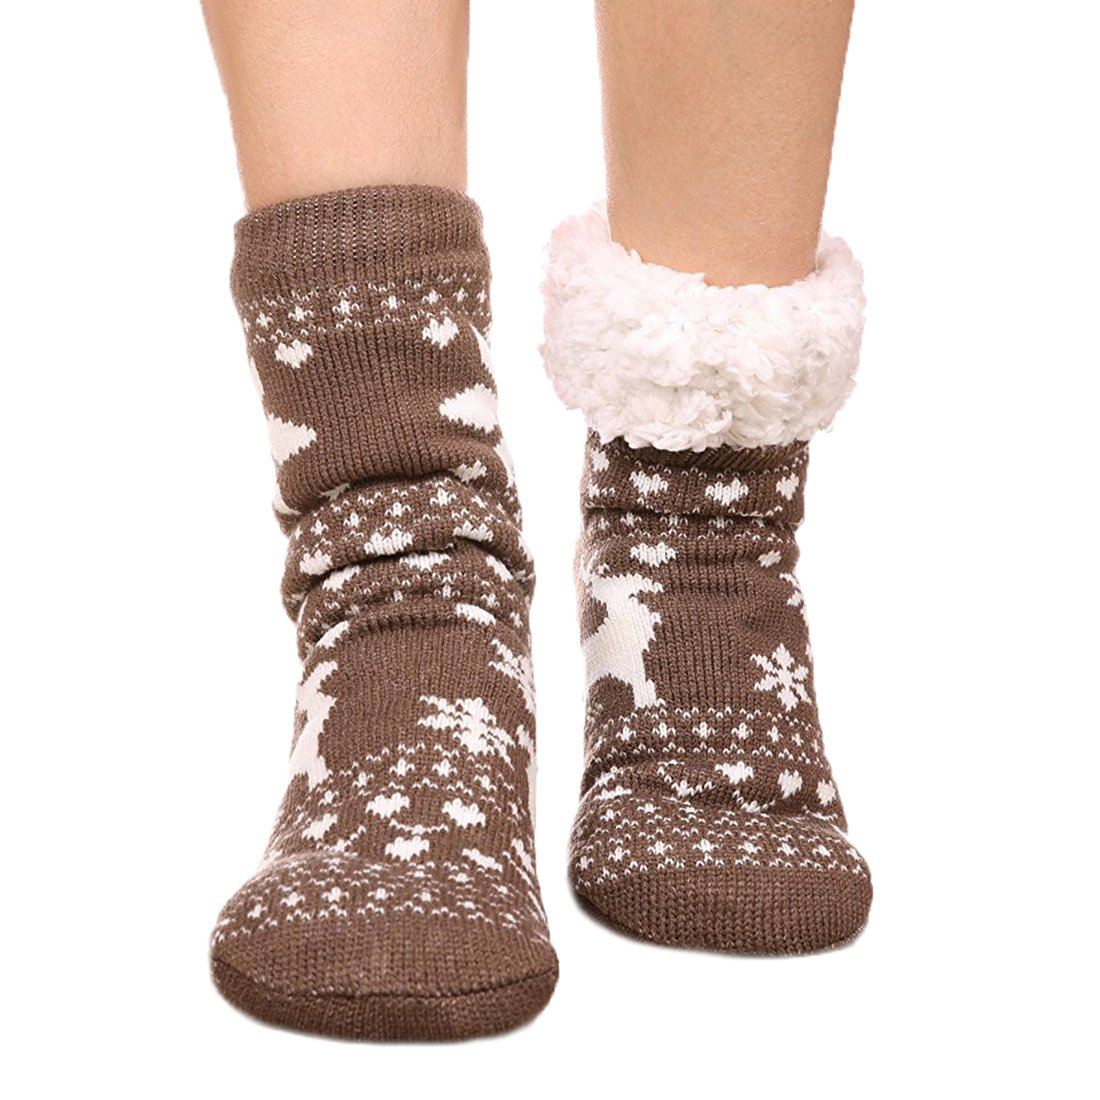 FRALOSHA socks Winter Socks Warm Cozy Fuzzy lined Slipper Socks Womens Socks